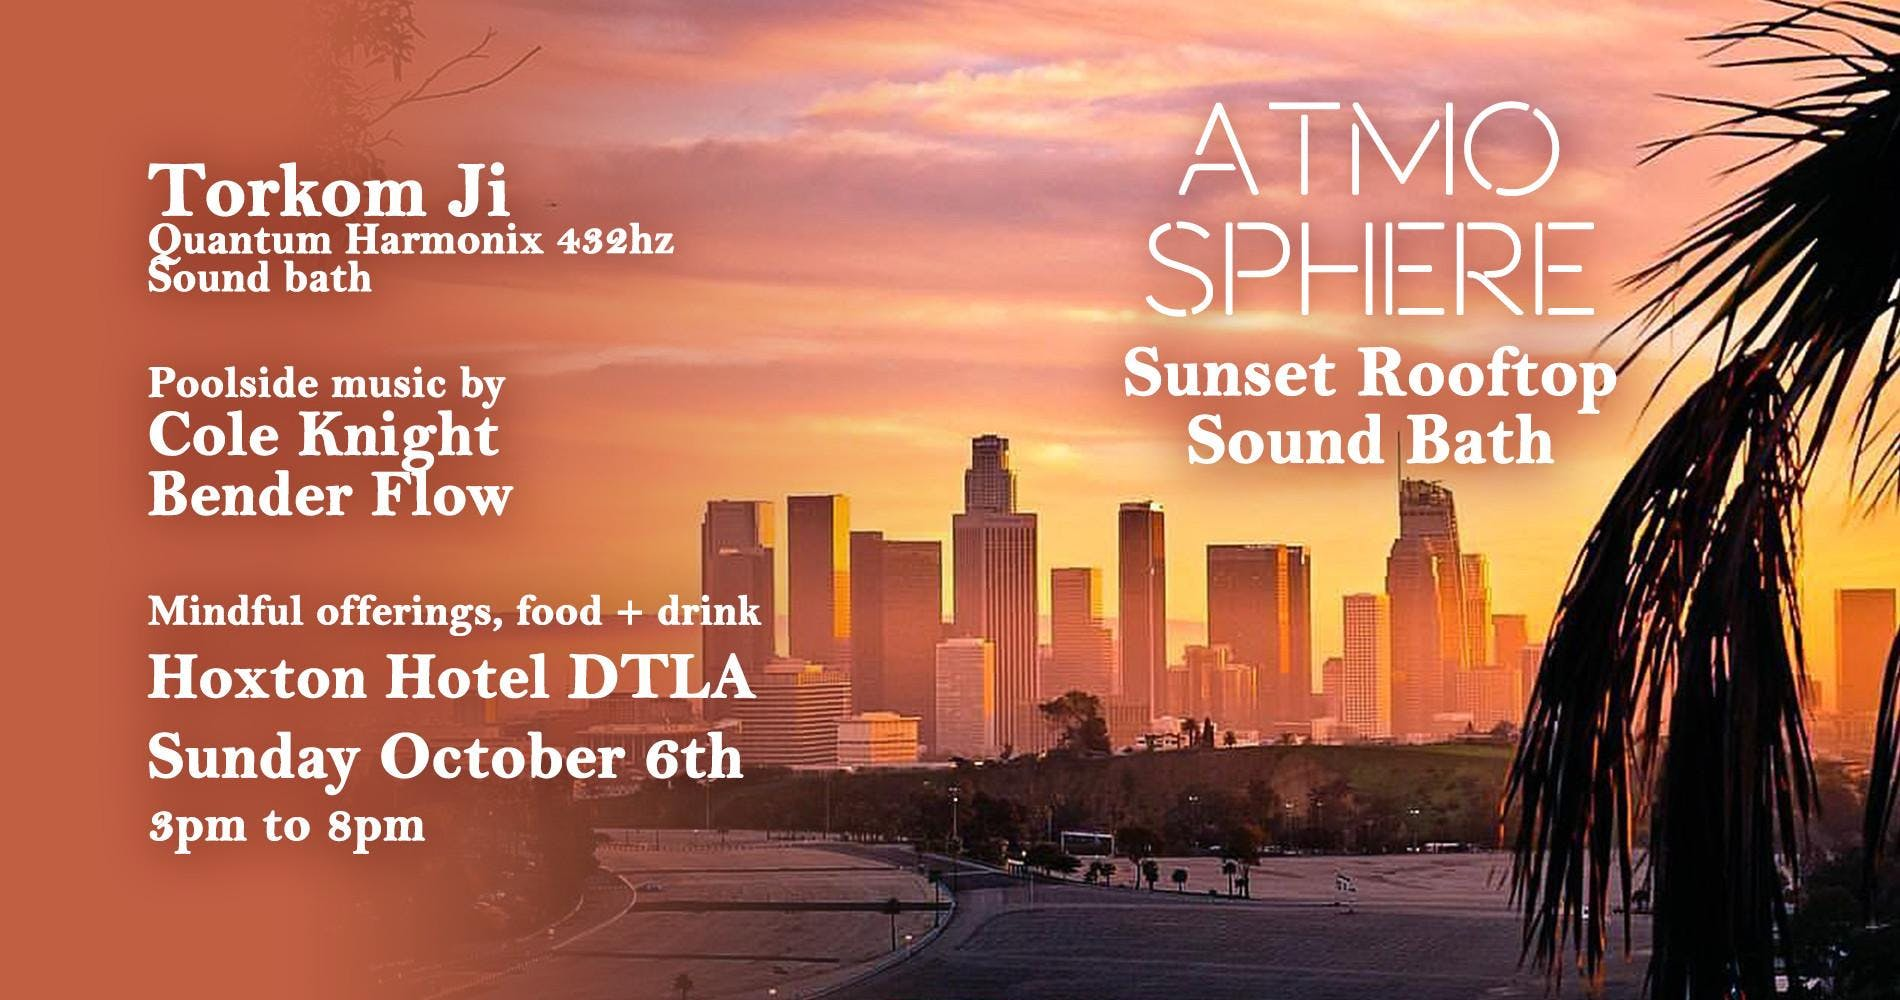 Atmosphere // Sunset Rooftop Sound Bath